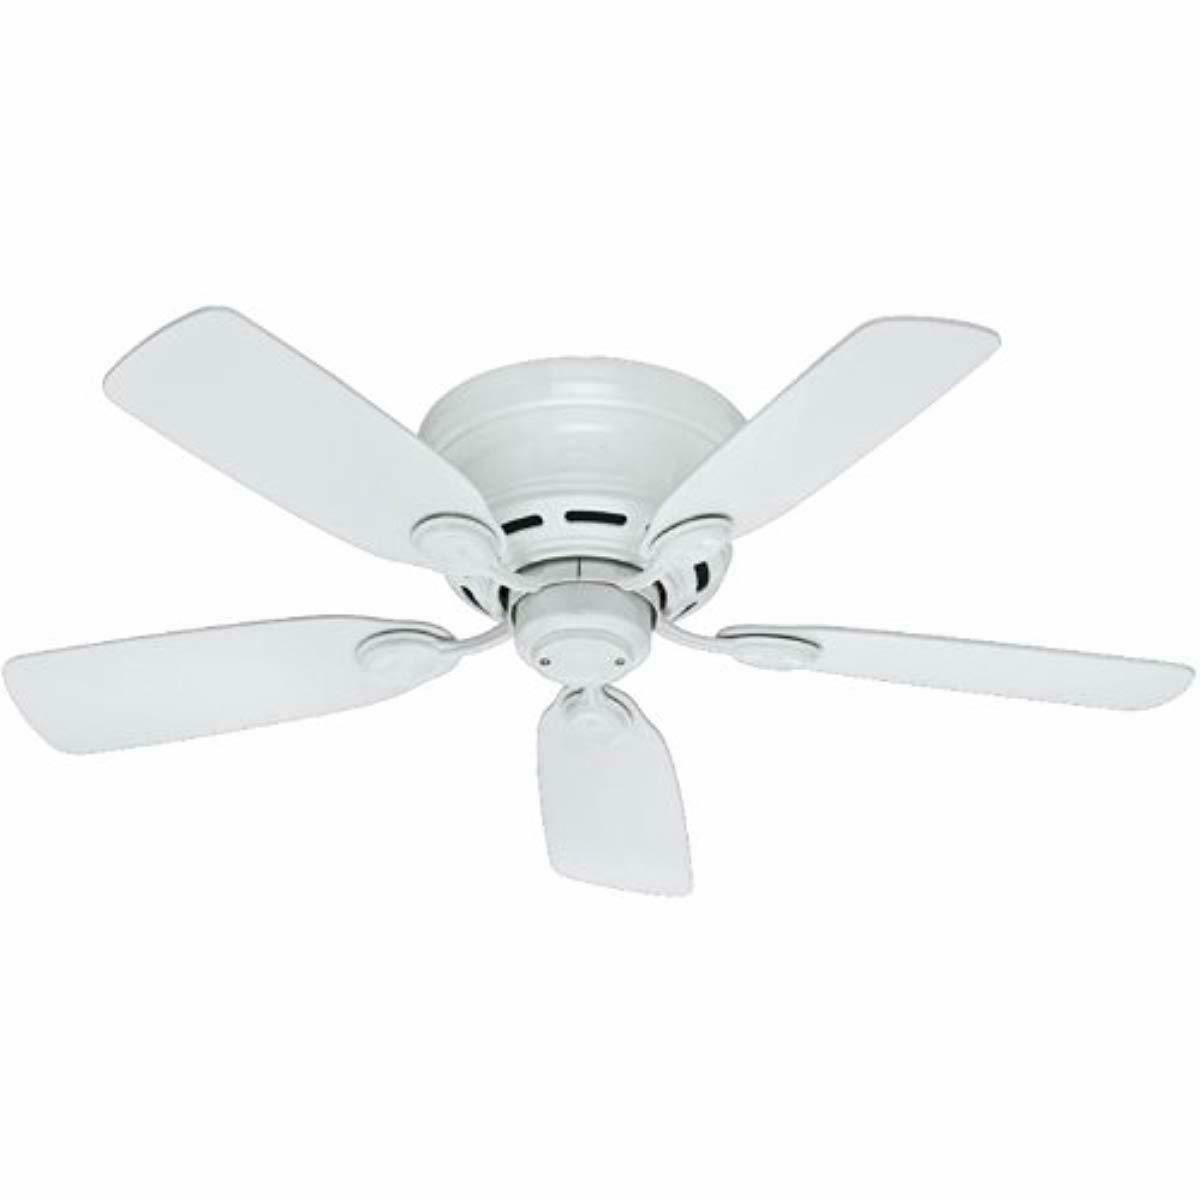 2020 Hunter 51059 Low Profile Iv 5 Blade Ceiling Fan, 42 Inch, White Throughout Low Profile Iv 5 Blade Ceiling Fans (View 3 of 20)